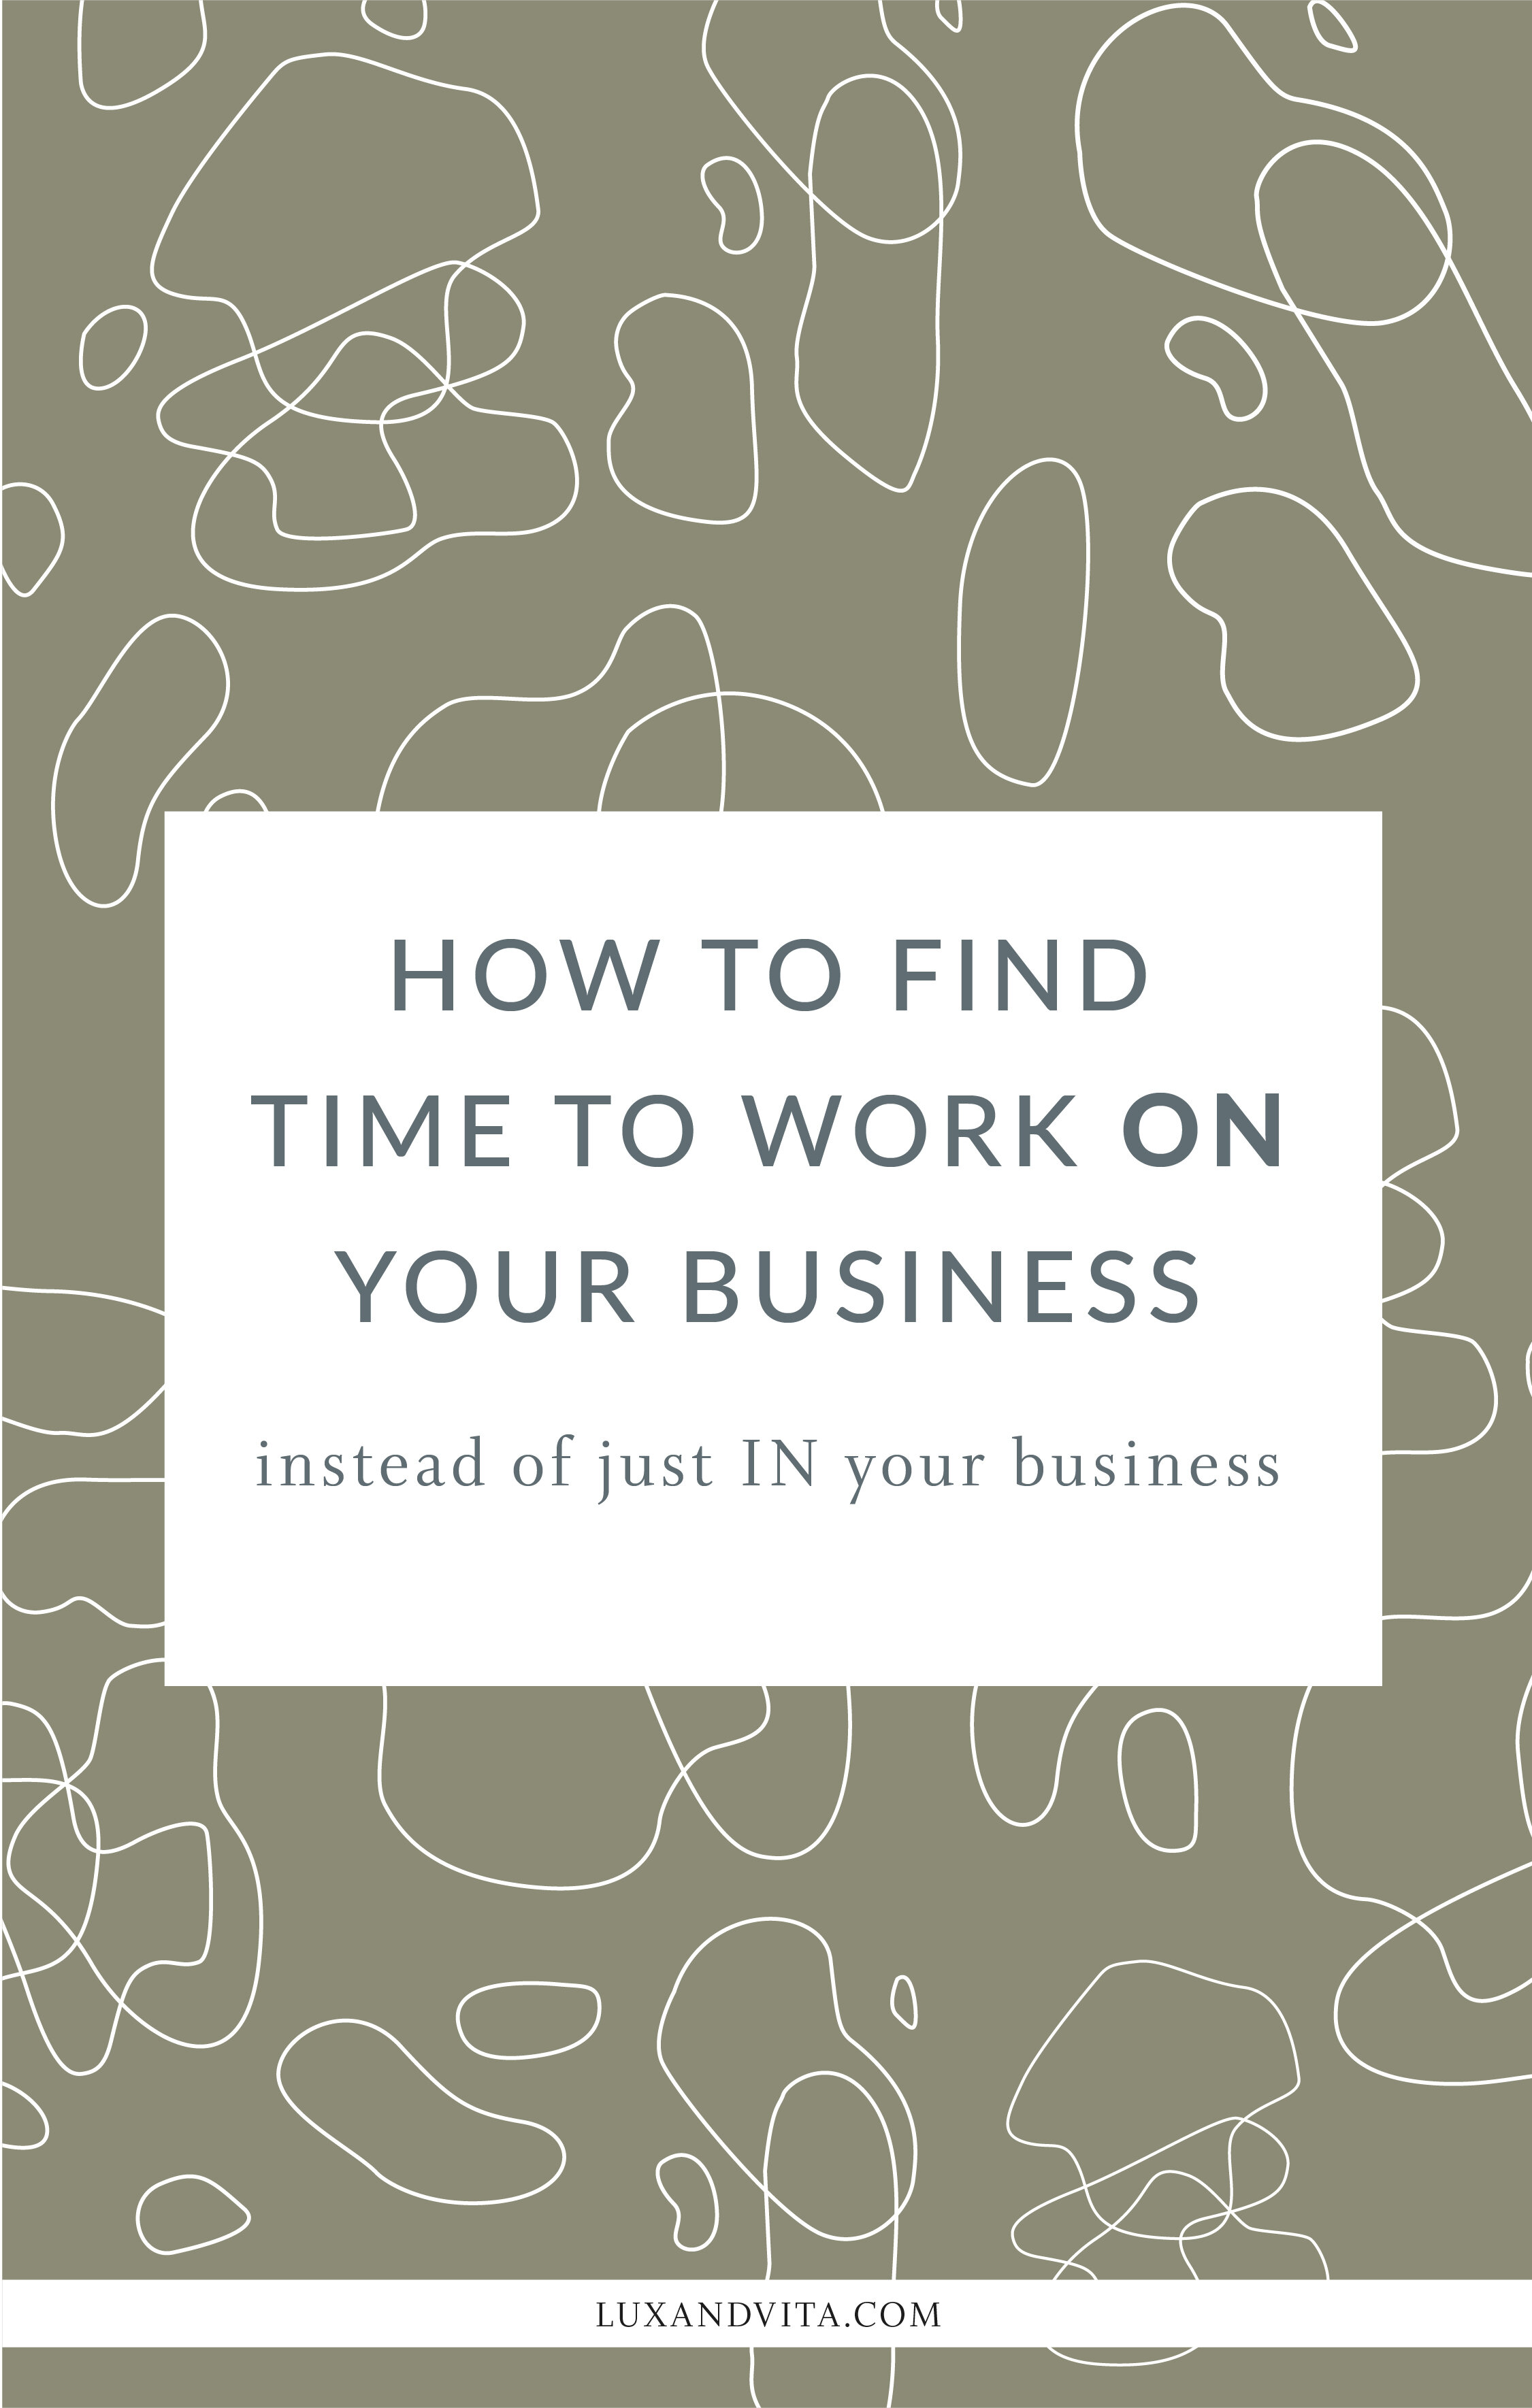 How to find time to work on your business_Pinterest 4.jpg